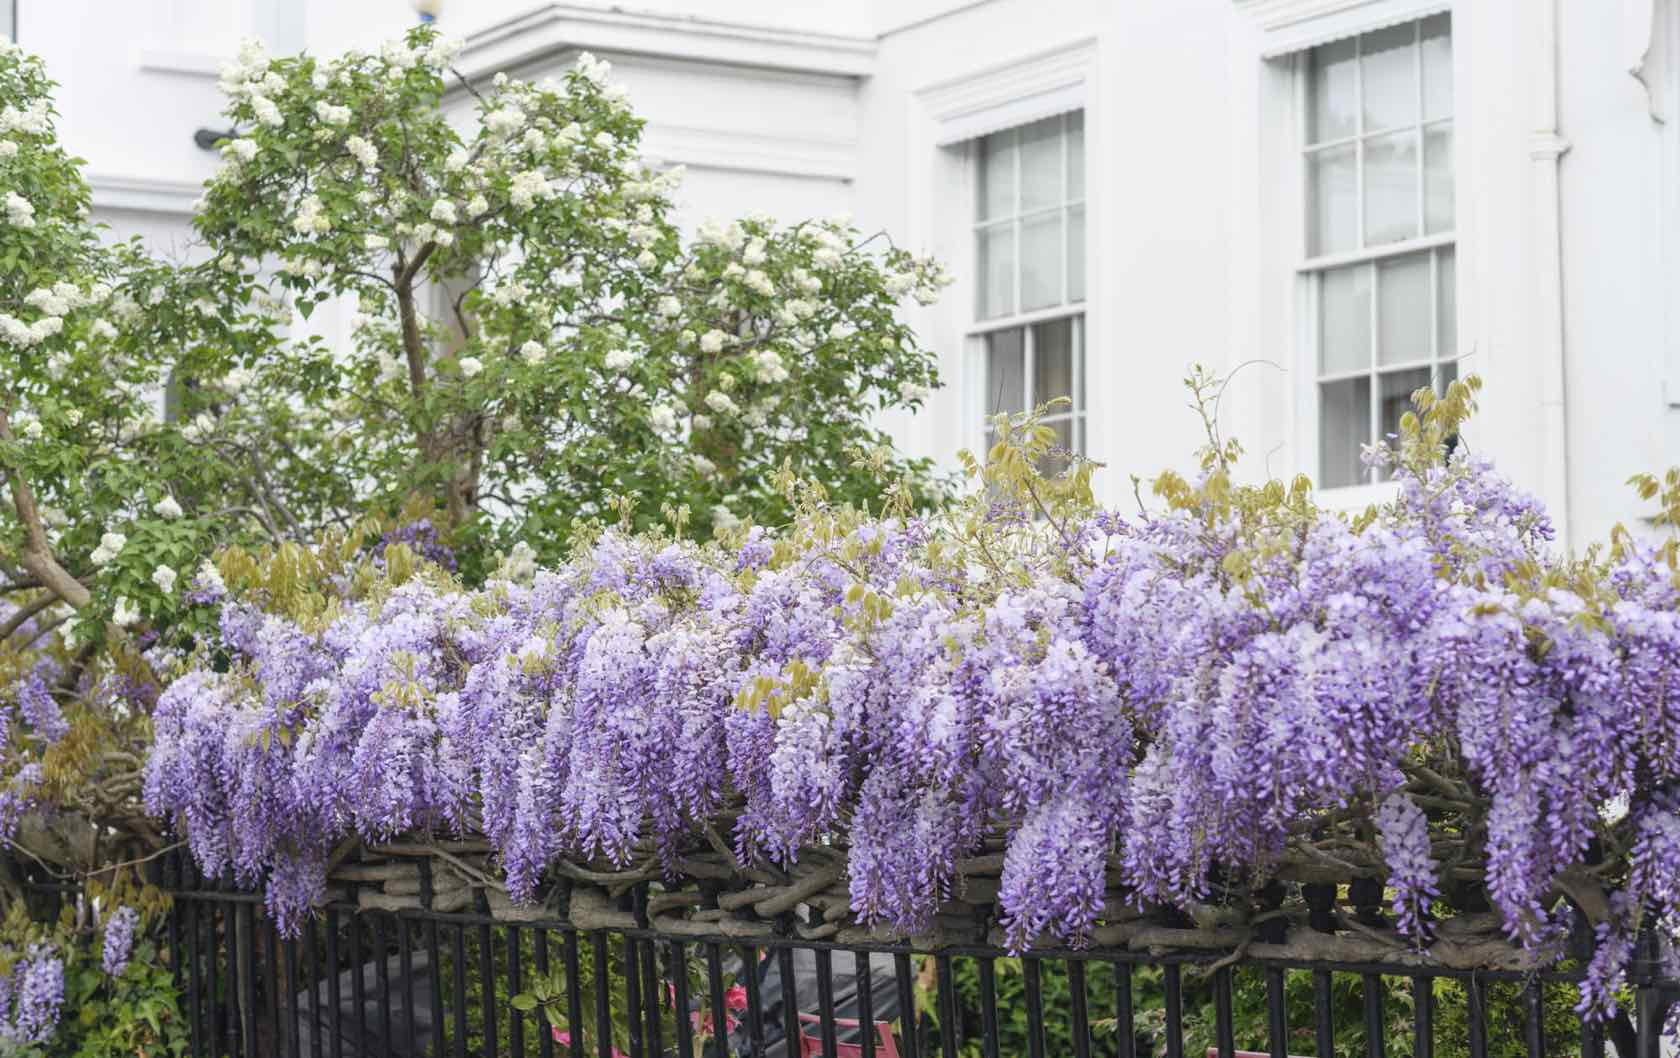 Spring flowers in London